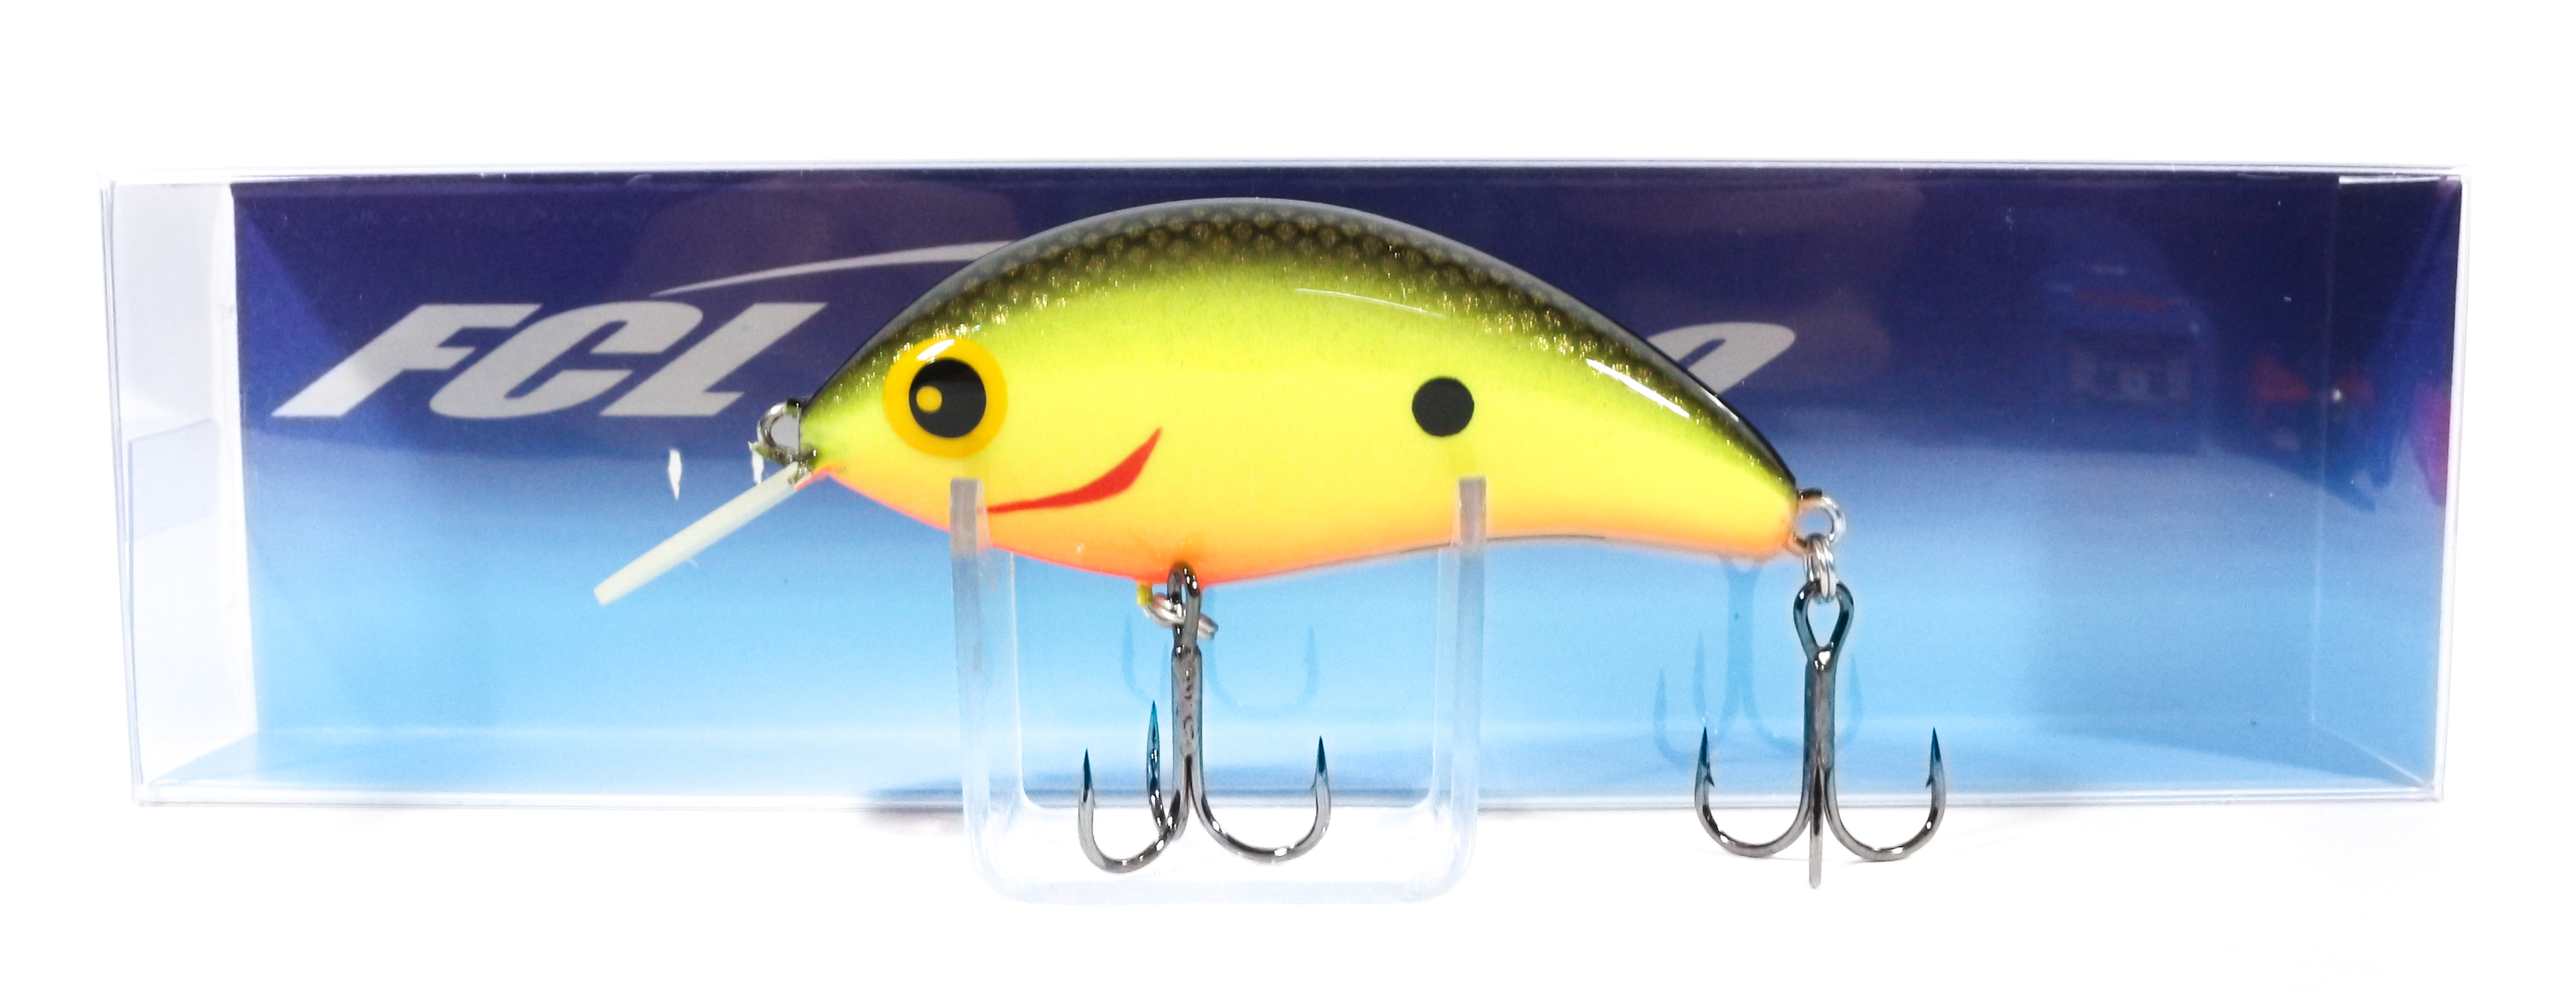 FCL Labo Lure Keshal 63 Floating Lure CBK (4389)